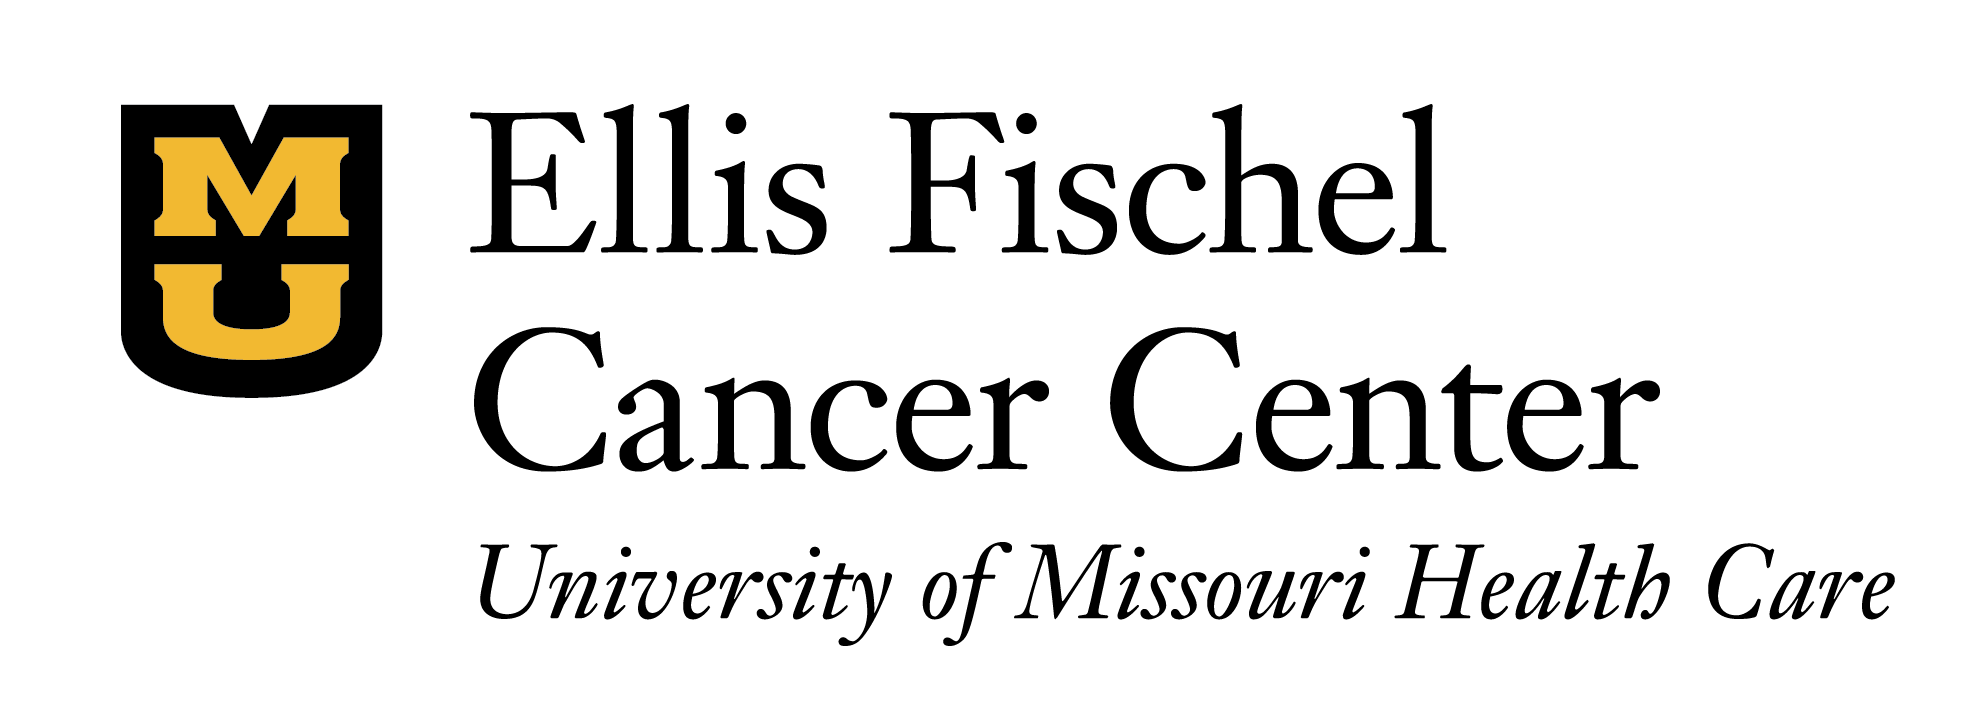 Ellis Fischel Cancer Center Logo